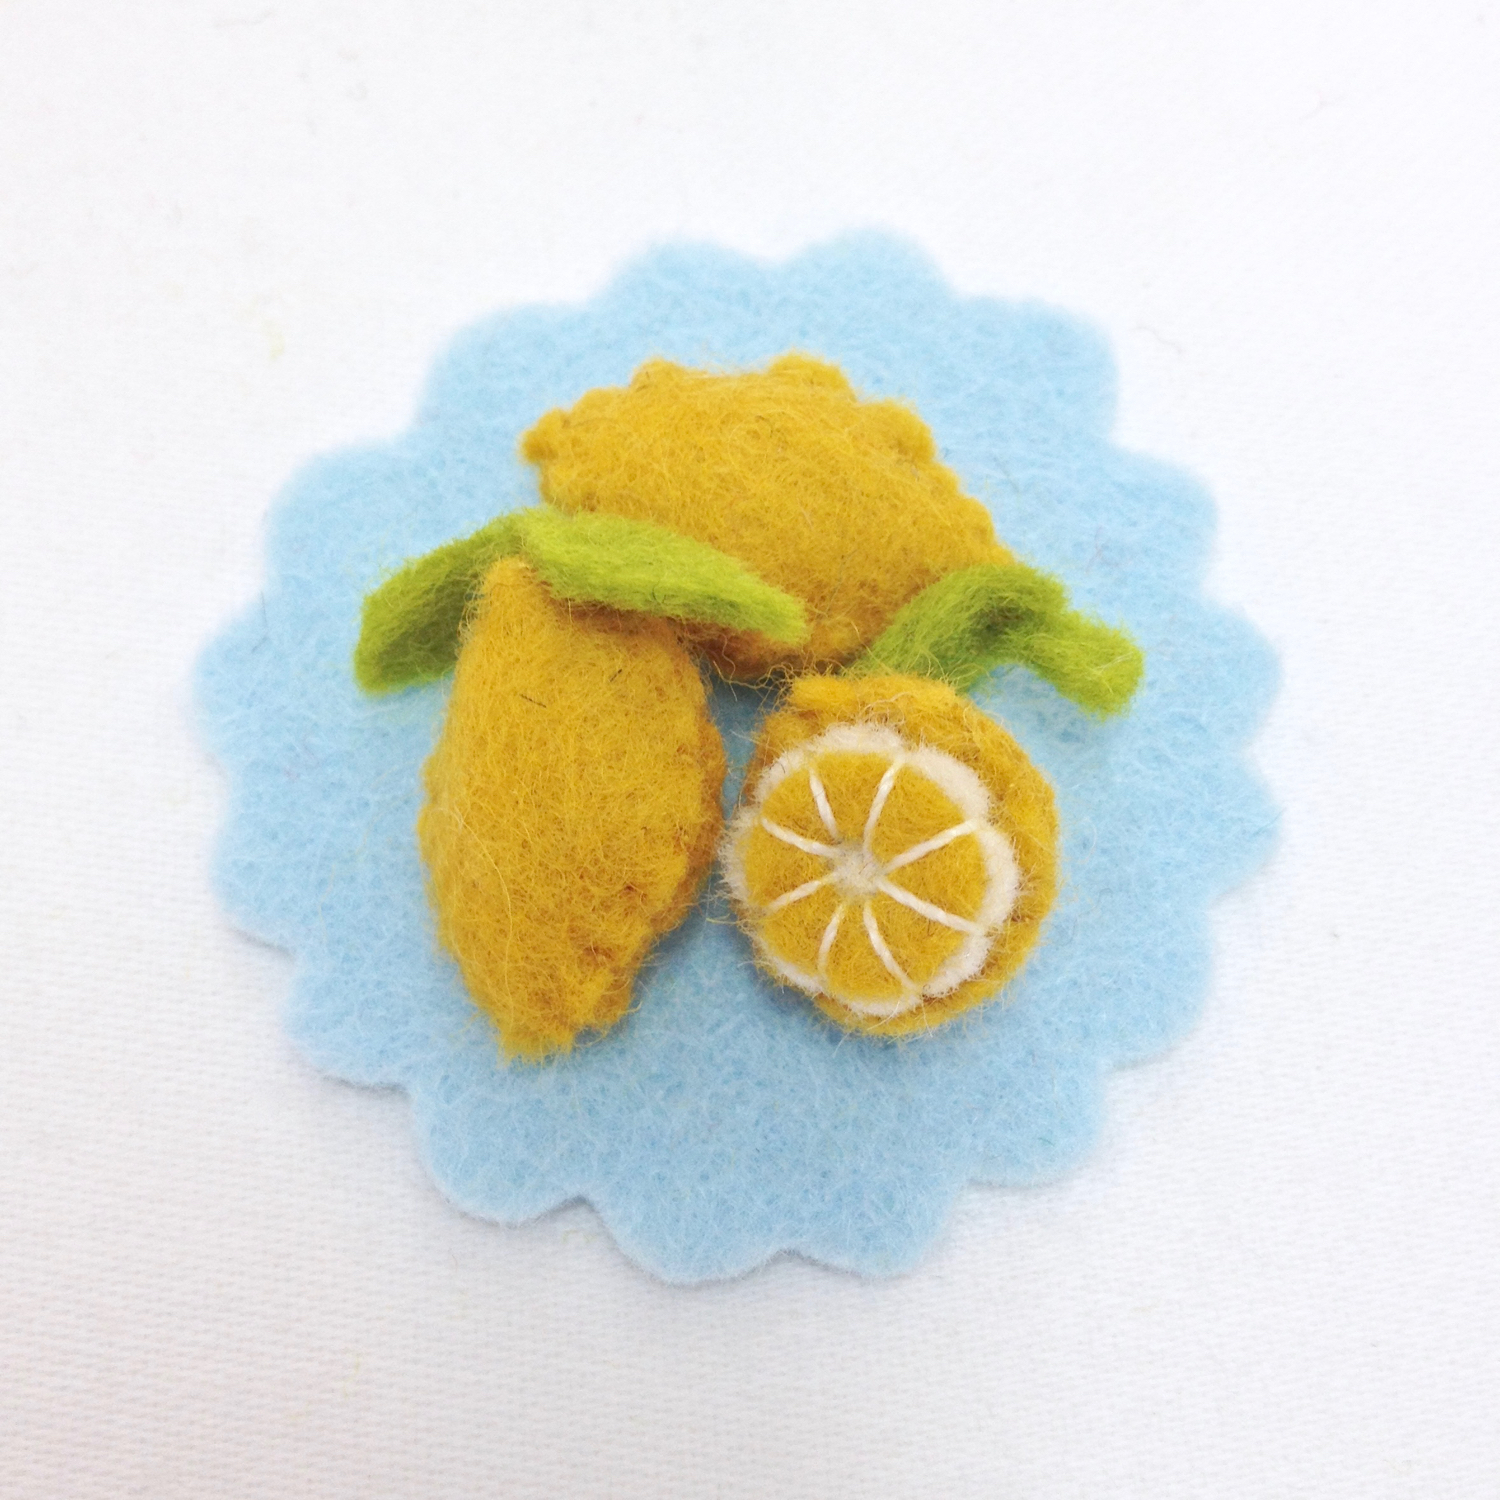 Felt play food miniature lemons handmade by Laura Mirjami